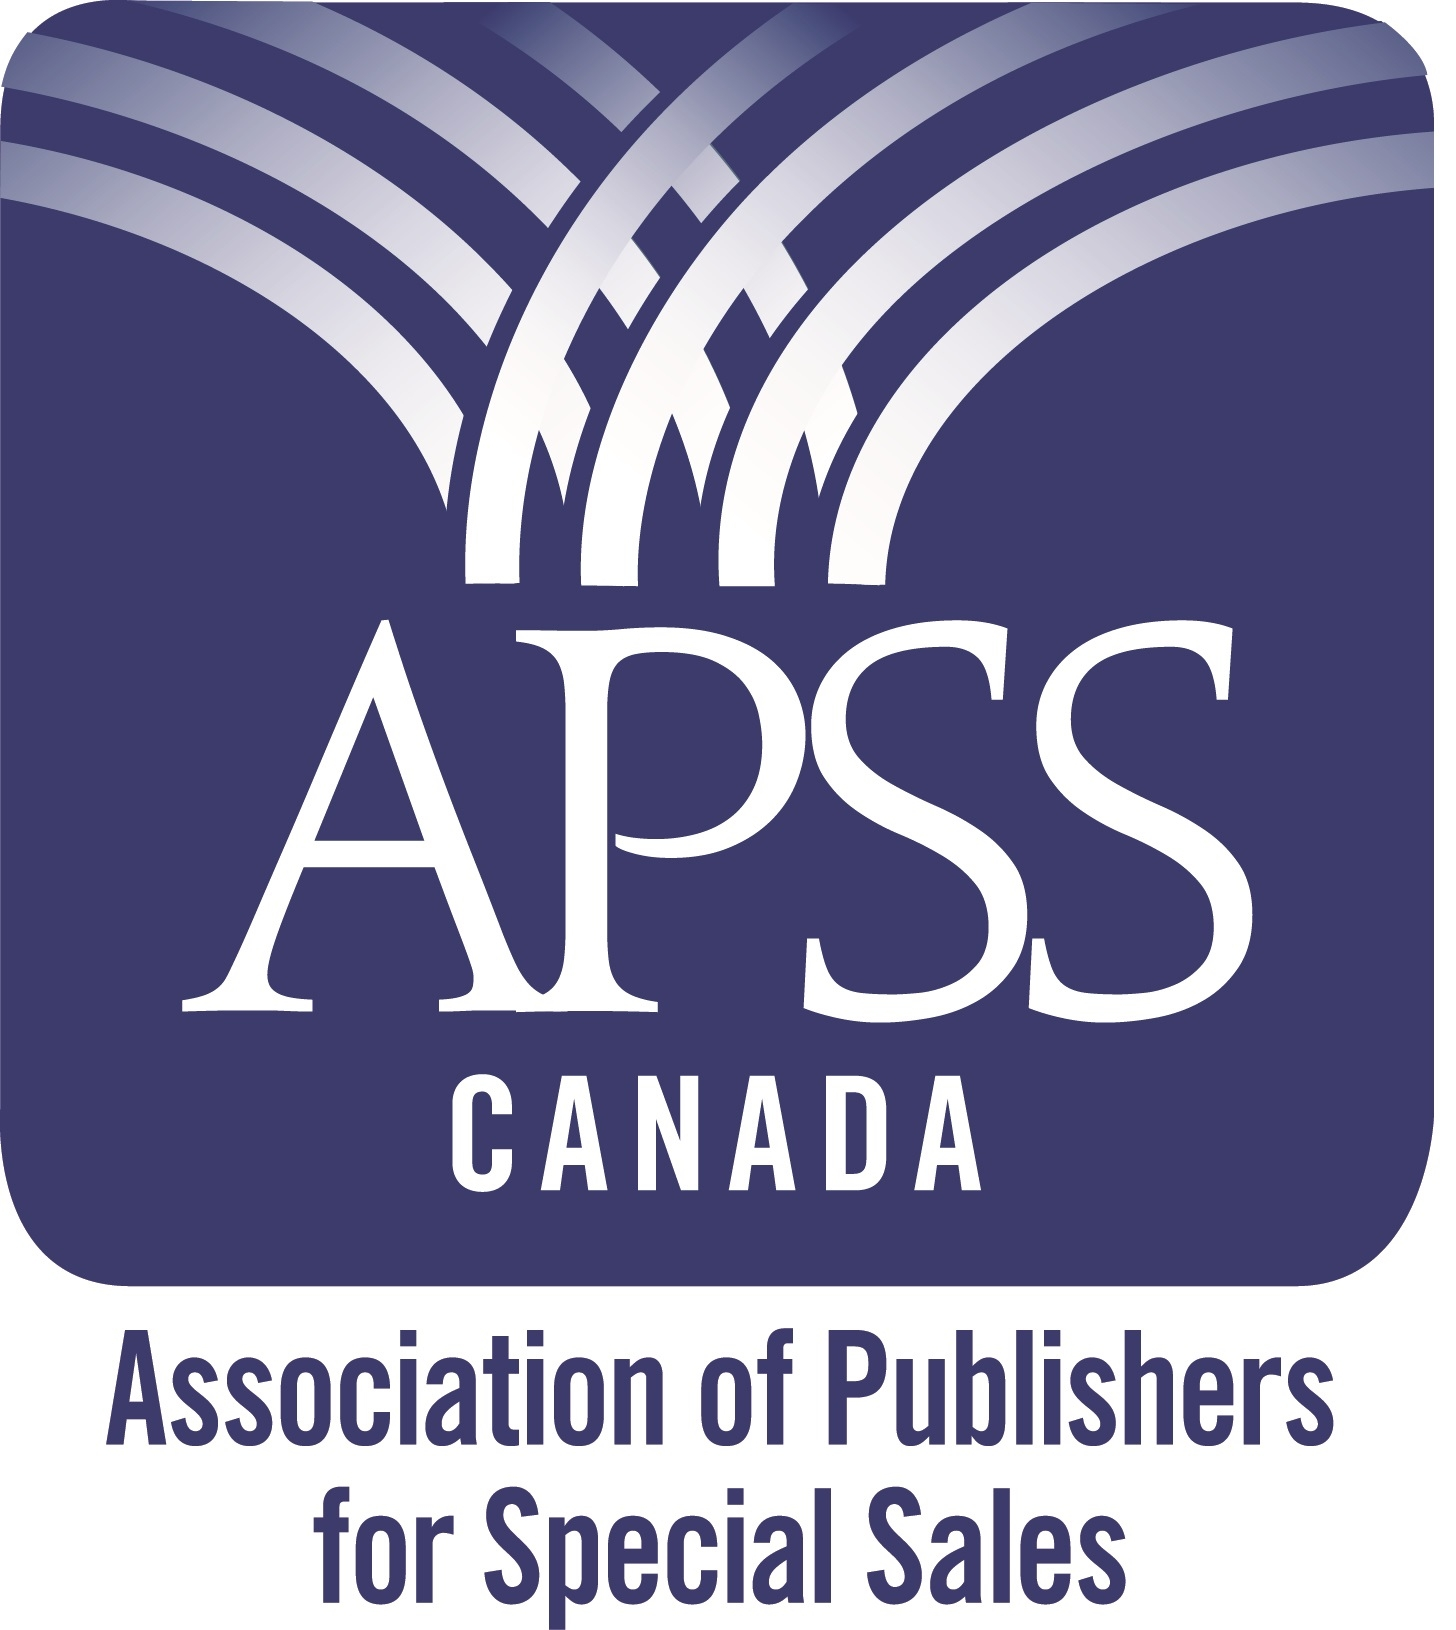 APSS Canada